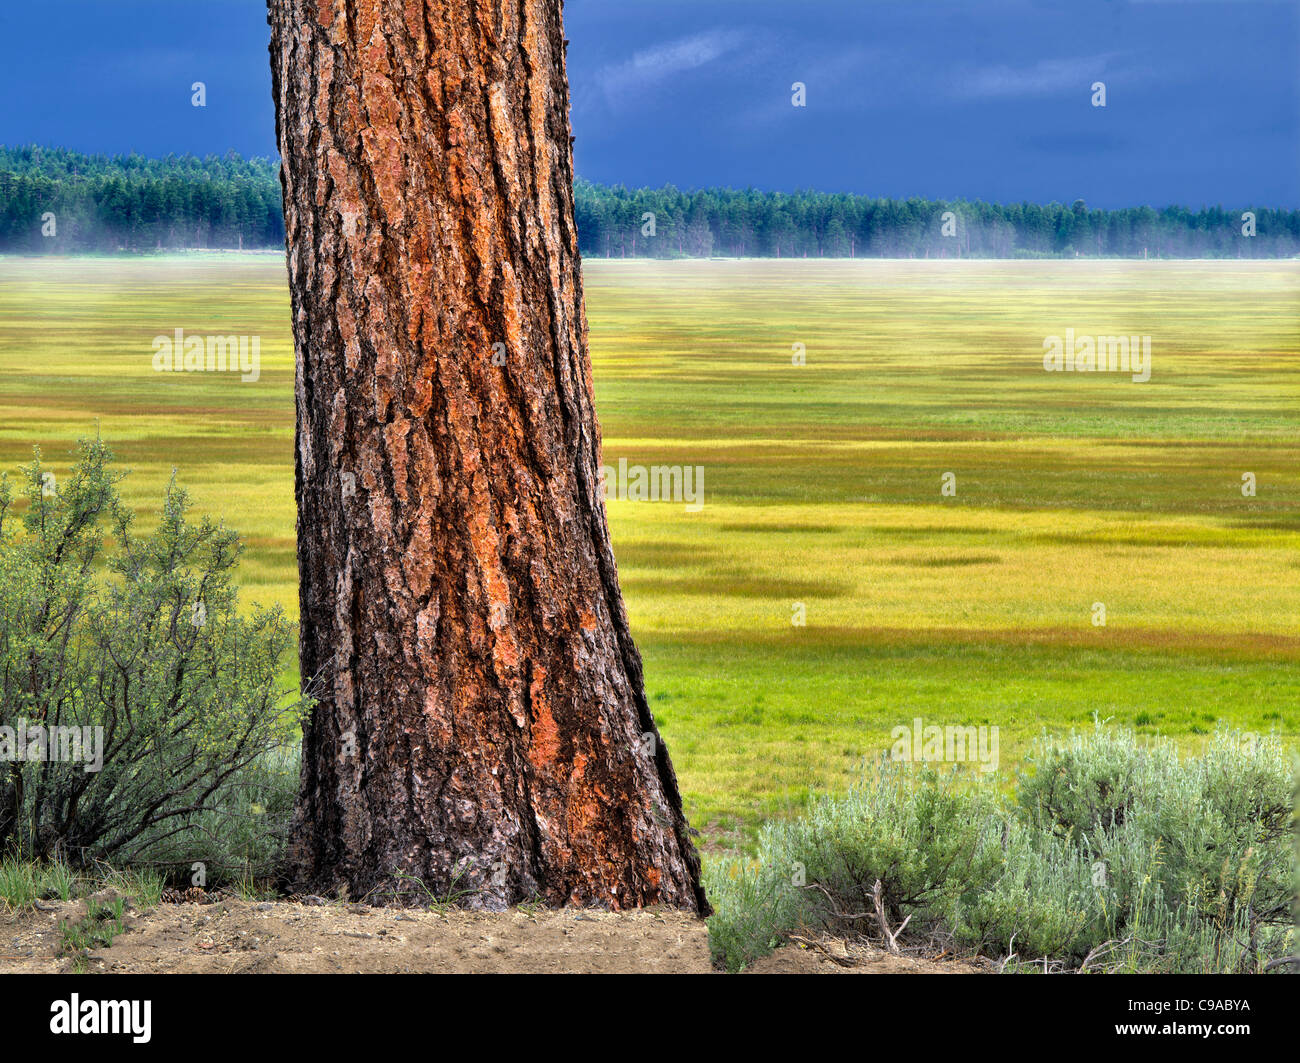 Ponderosa Pine tree and Klamath Marsh National Wildlife Refuge, Oregon. - Stock Image